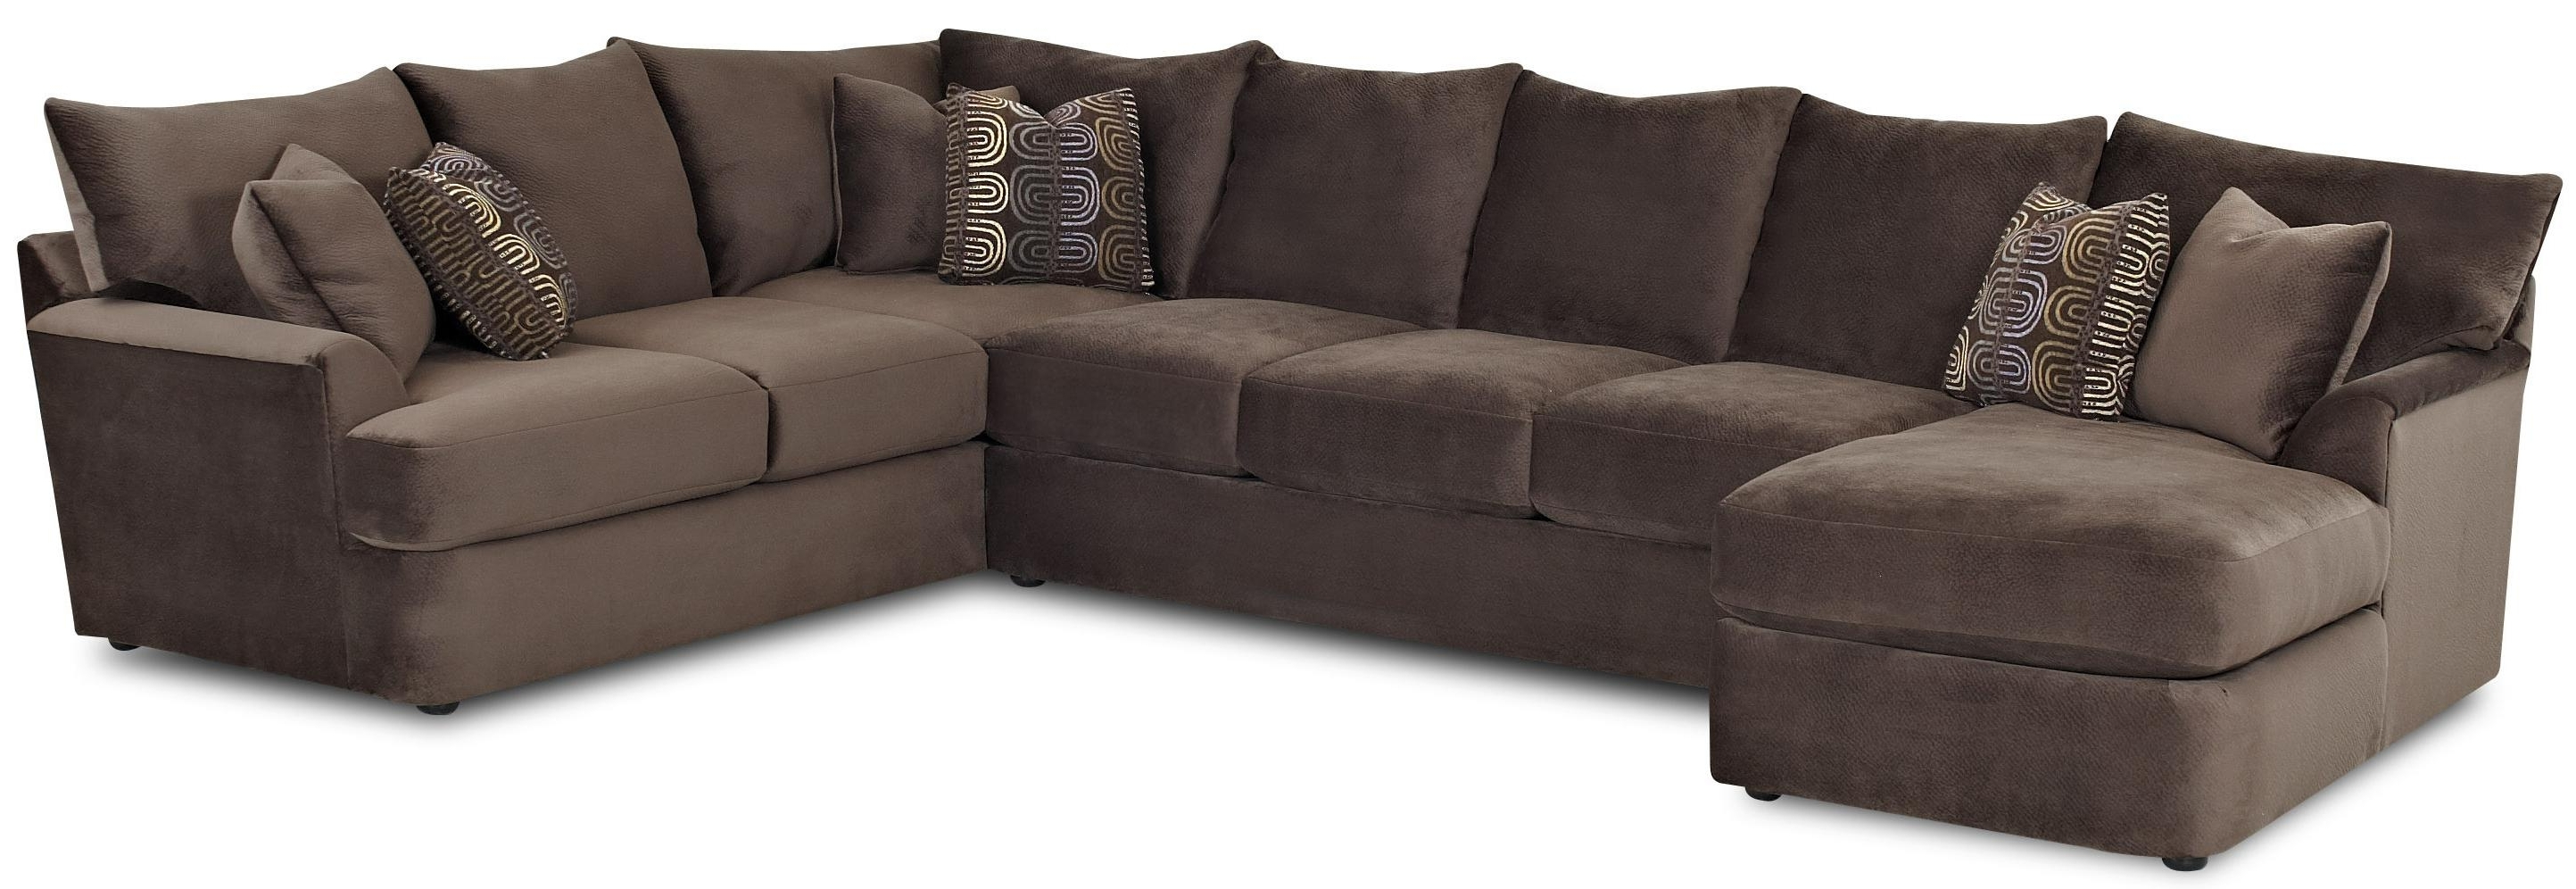 Well Known Sectional Sofa Design: Best Seller L Shaped Sectional Sofas For Throughout Leather L Shaped Sectional Sofas (View 10 of 15)